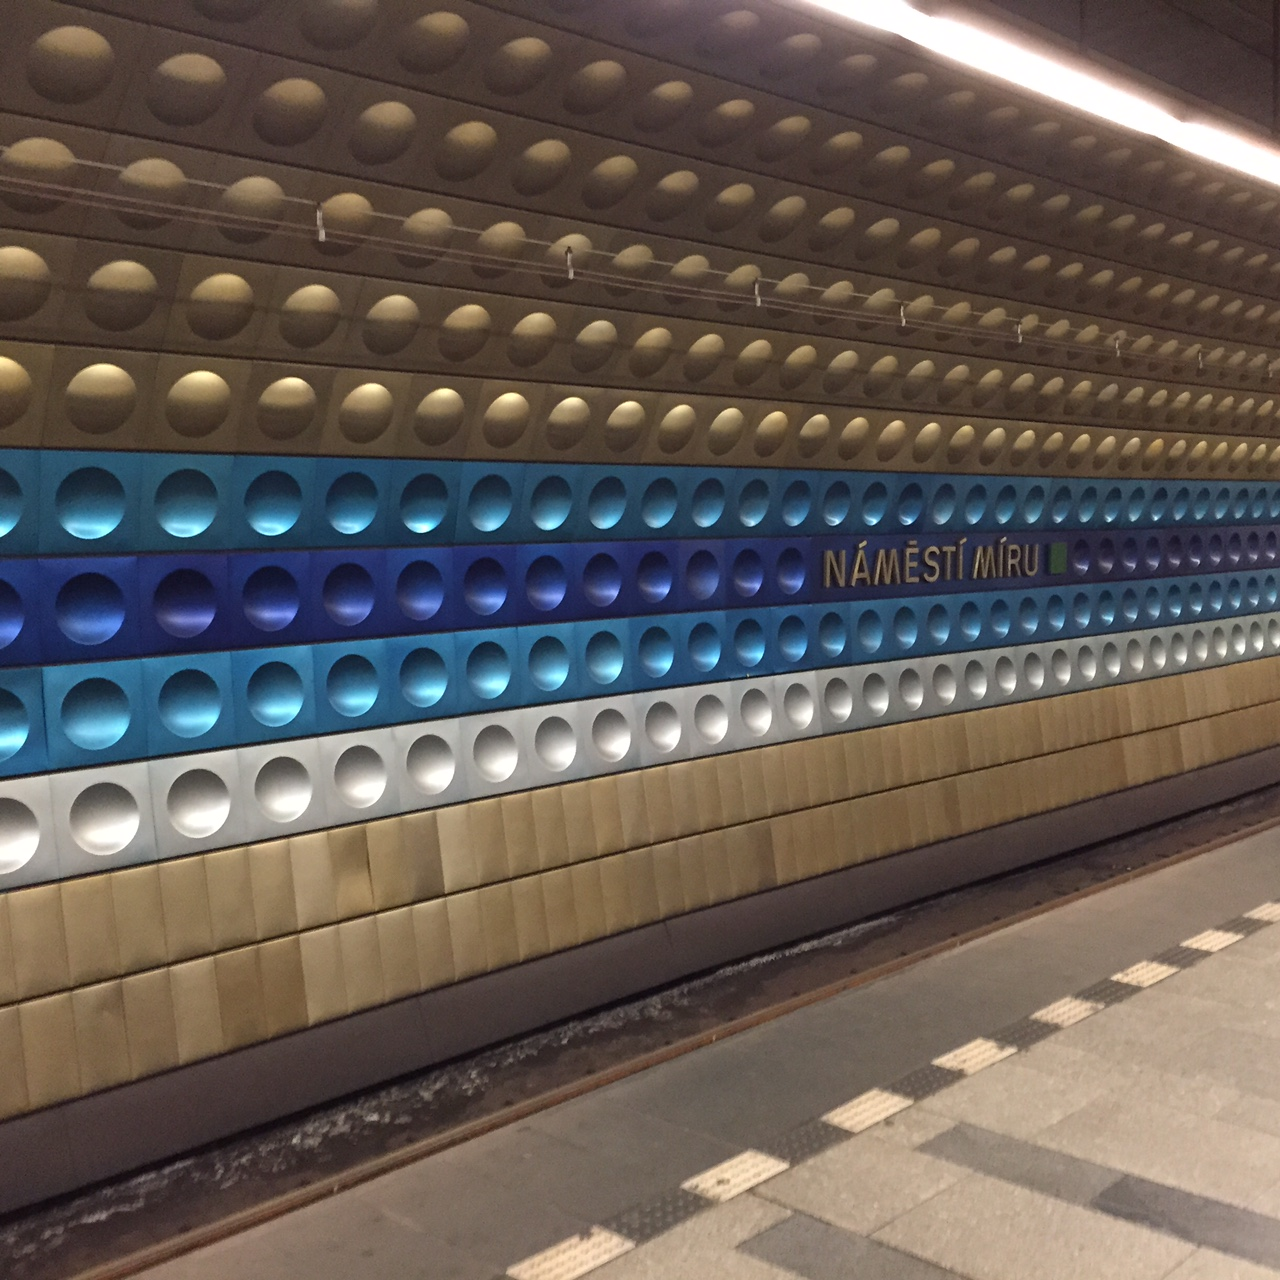 Prague metro - Station Namesti Miru